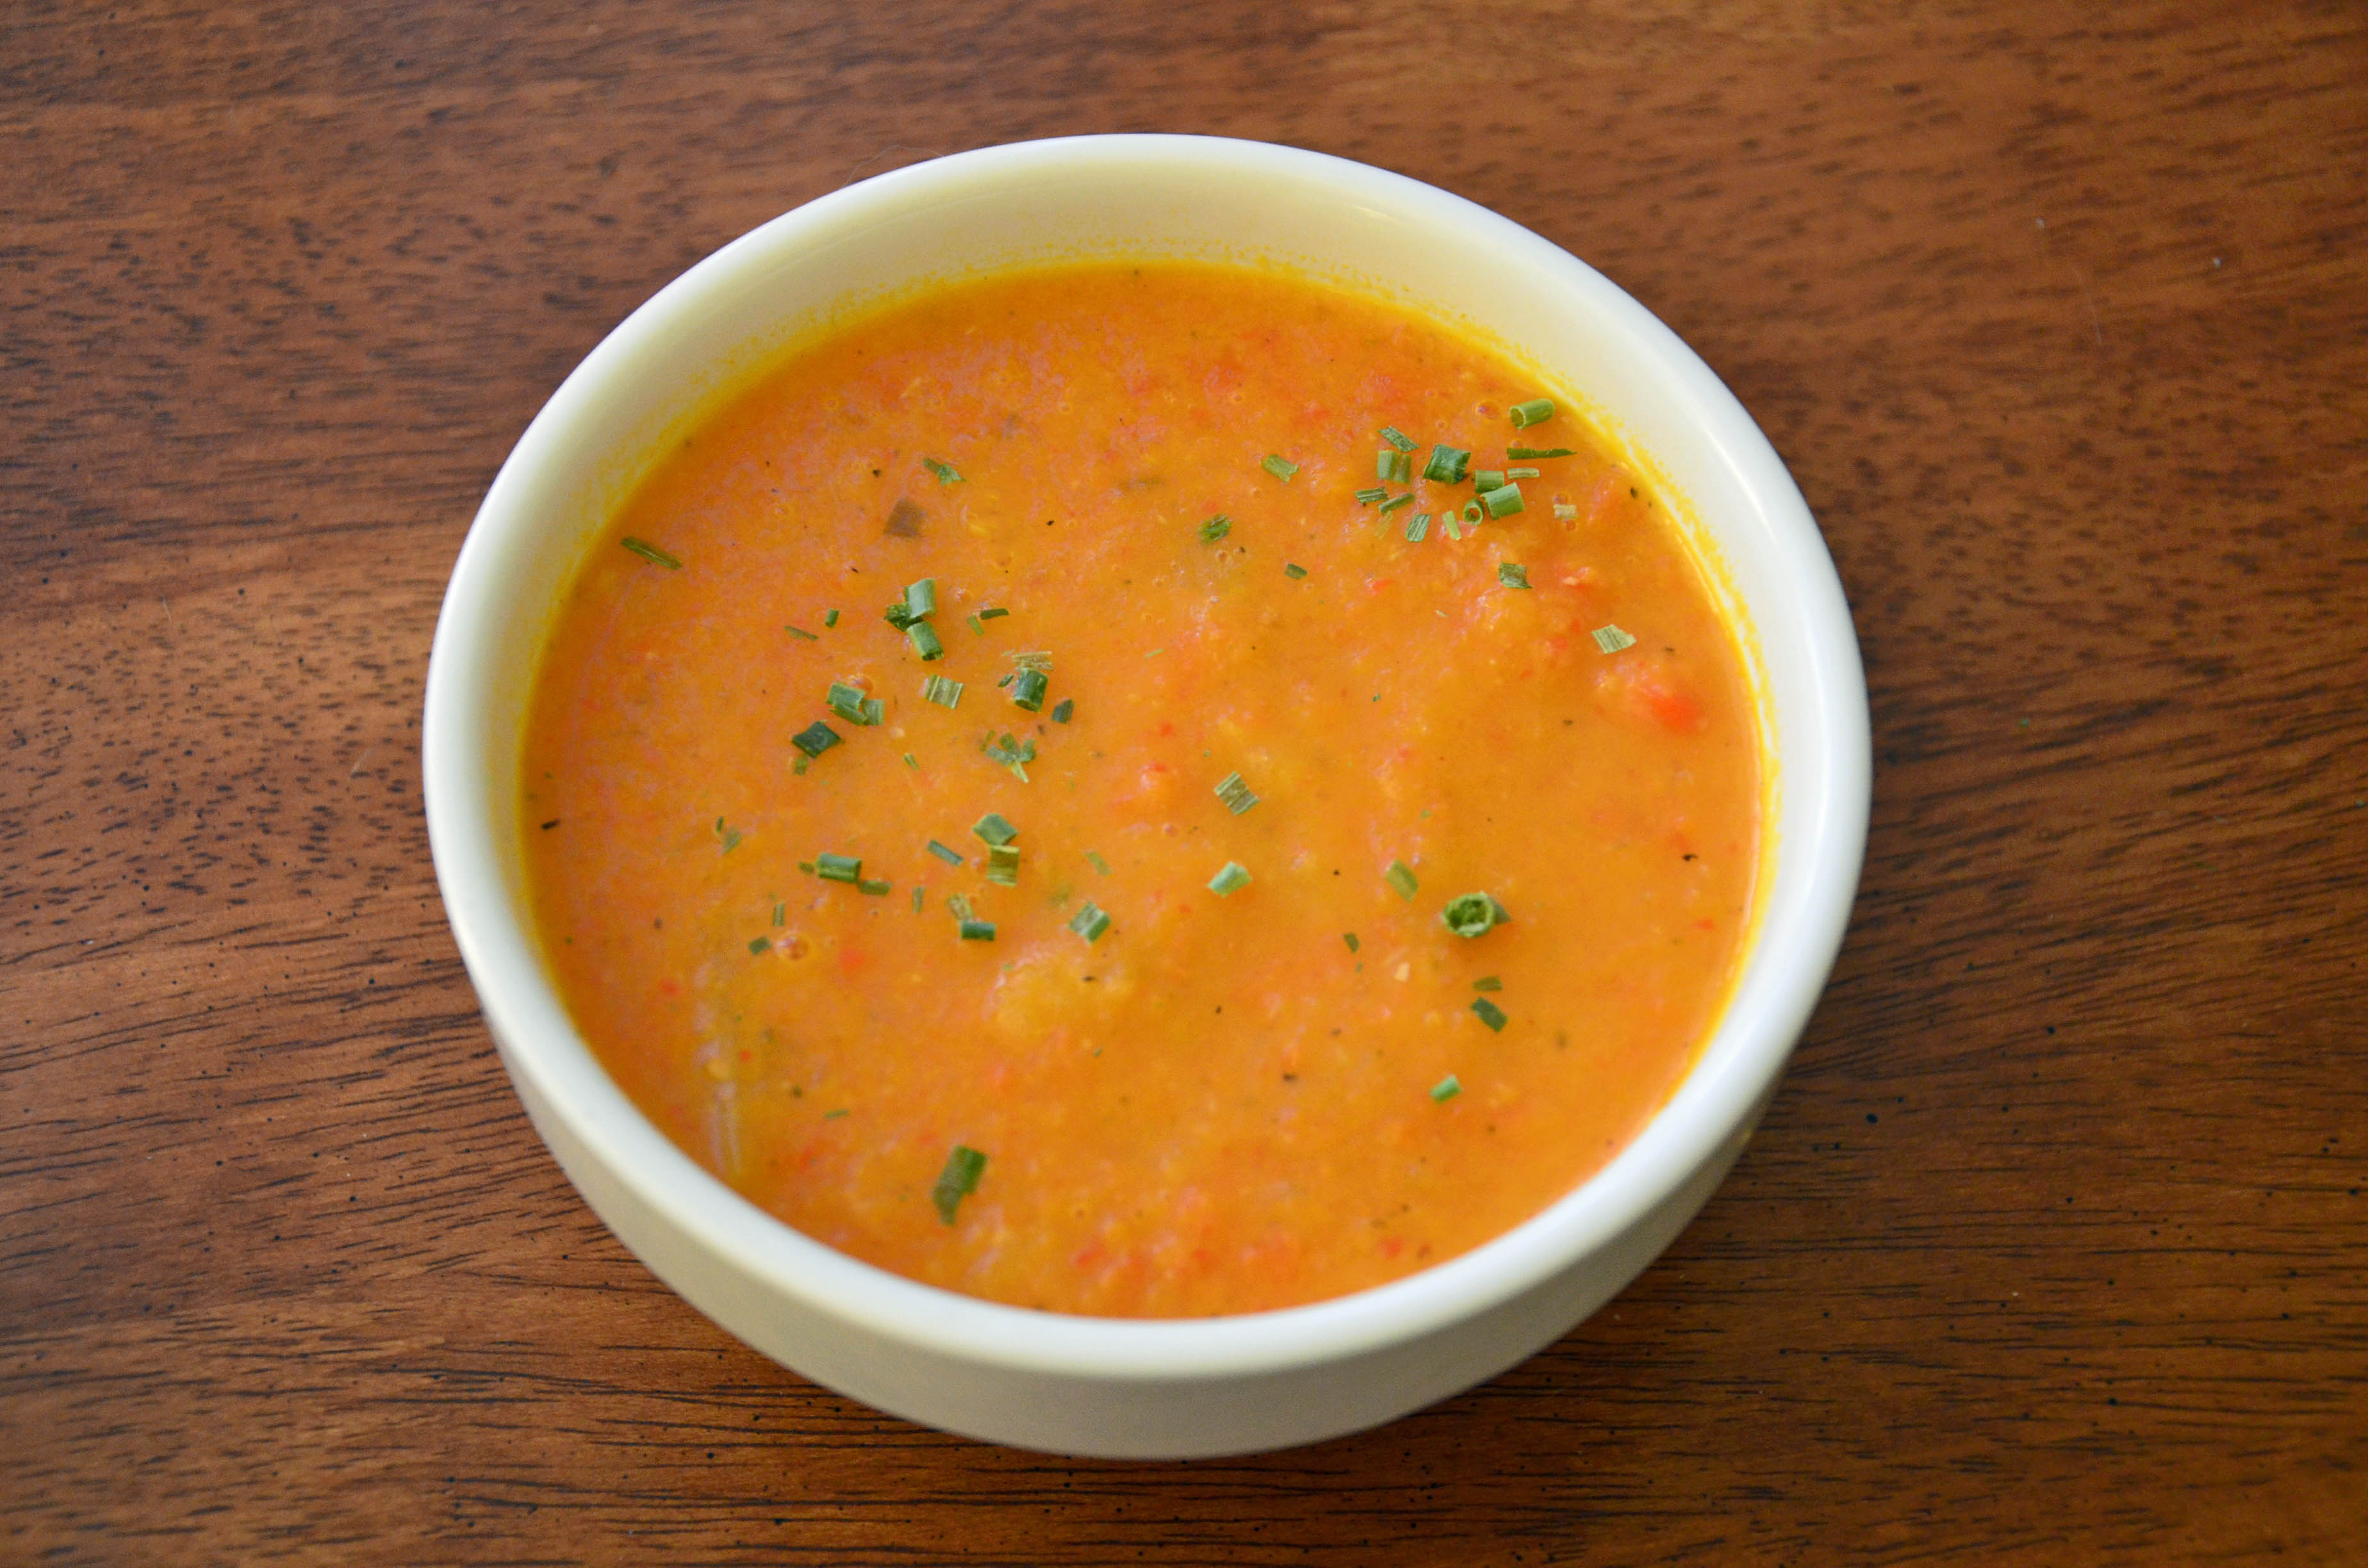 Immune Boosting Ginger Carrot Soup - Holly's Helpings